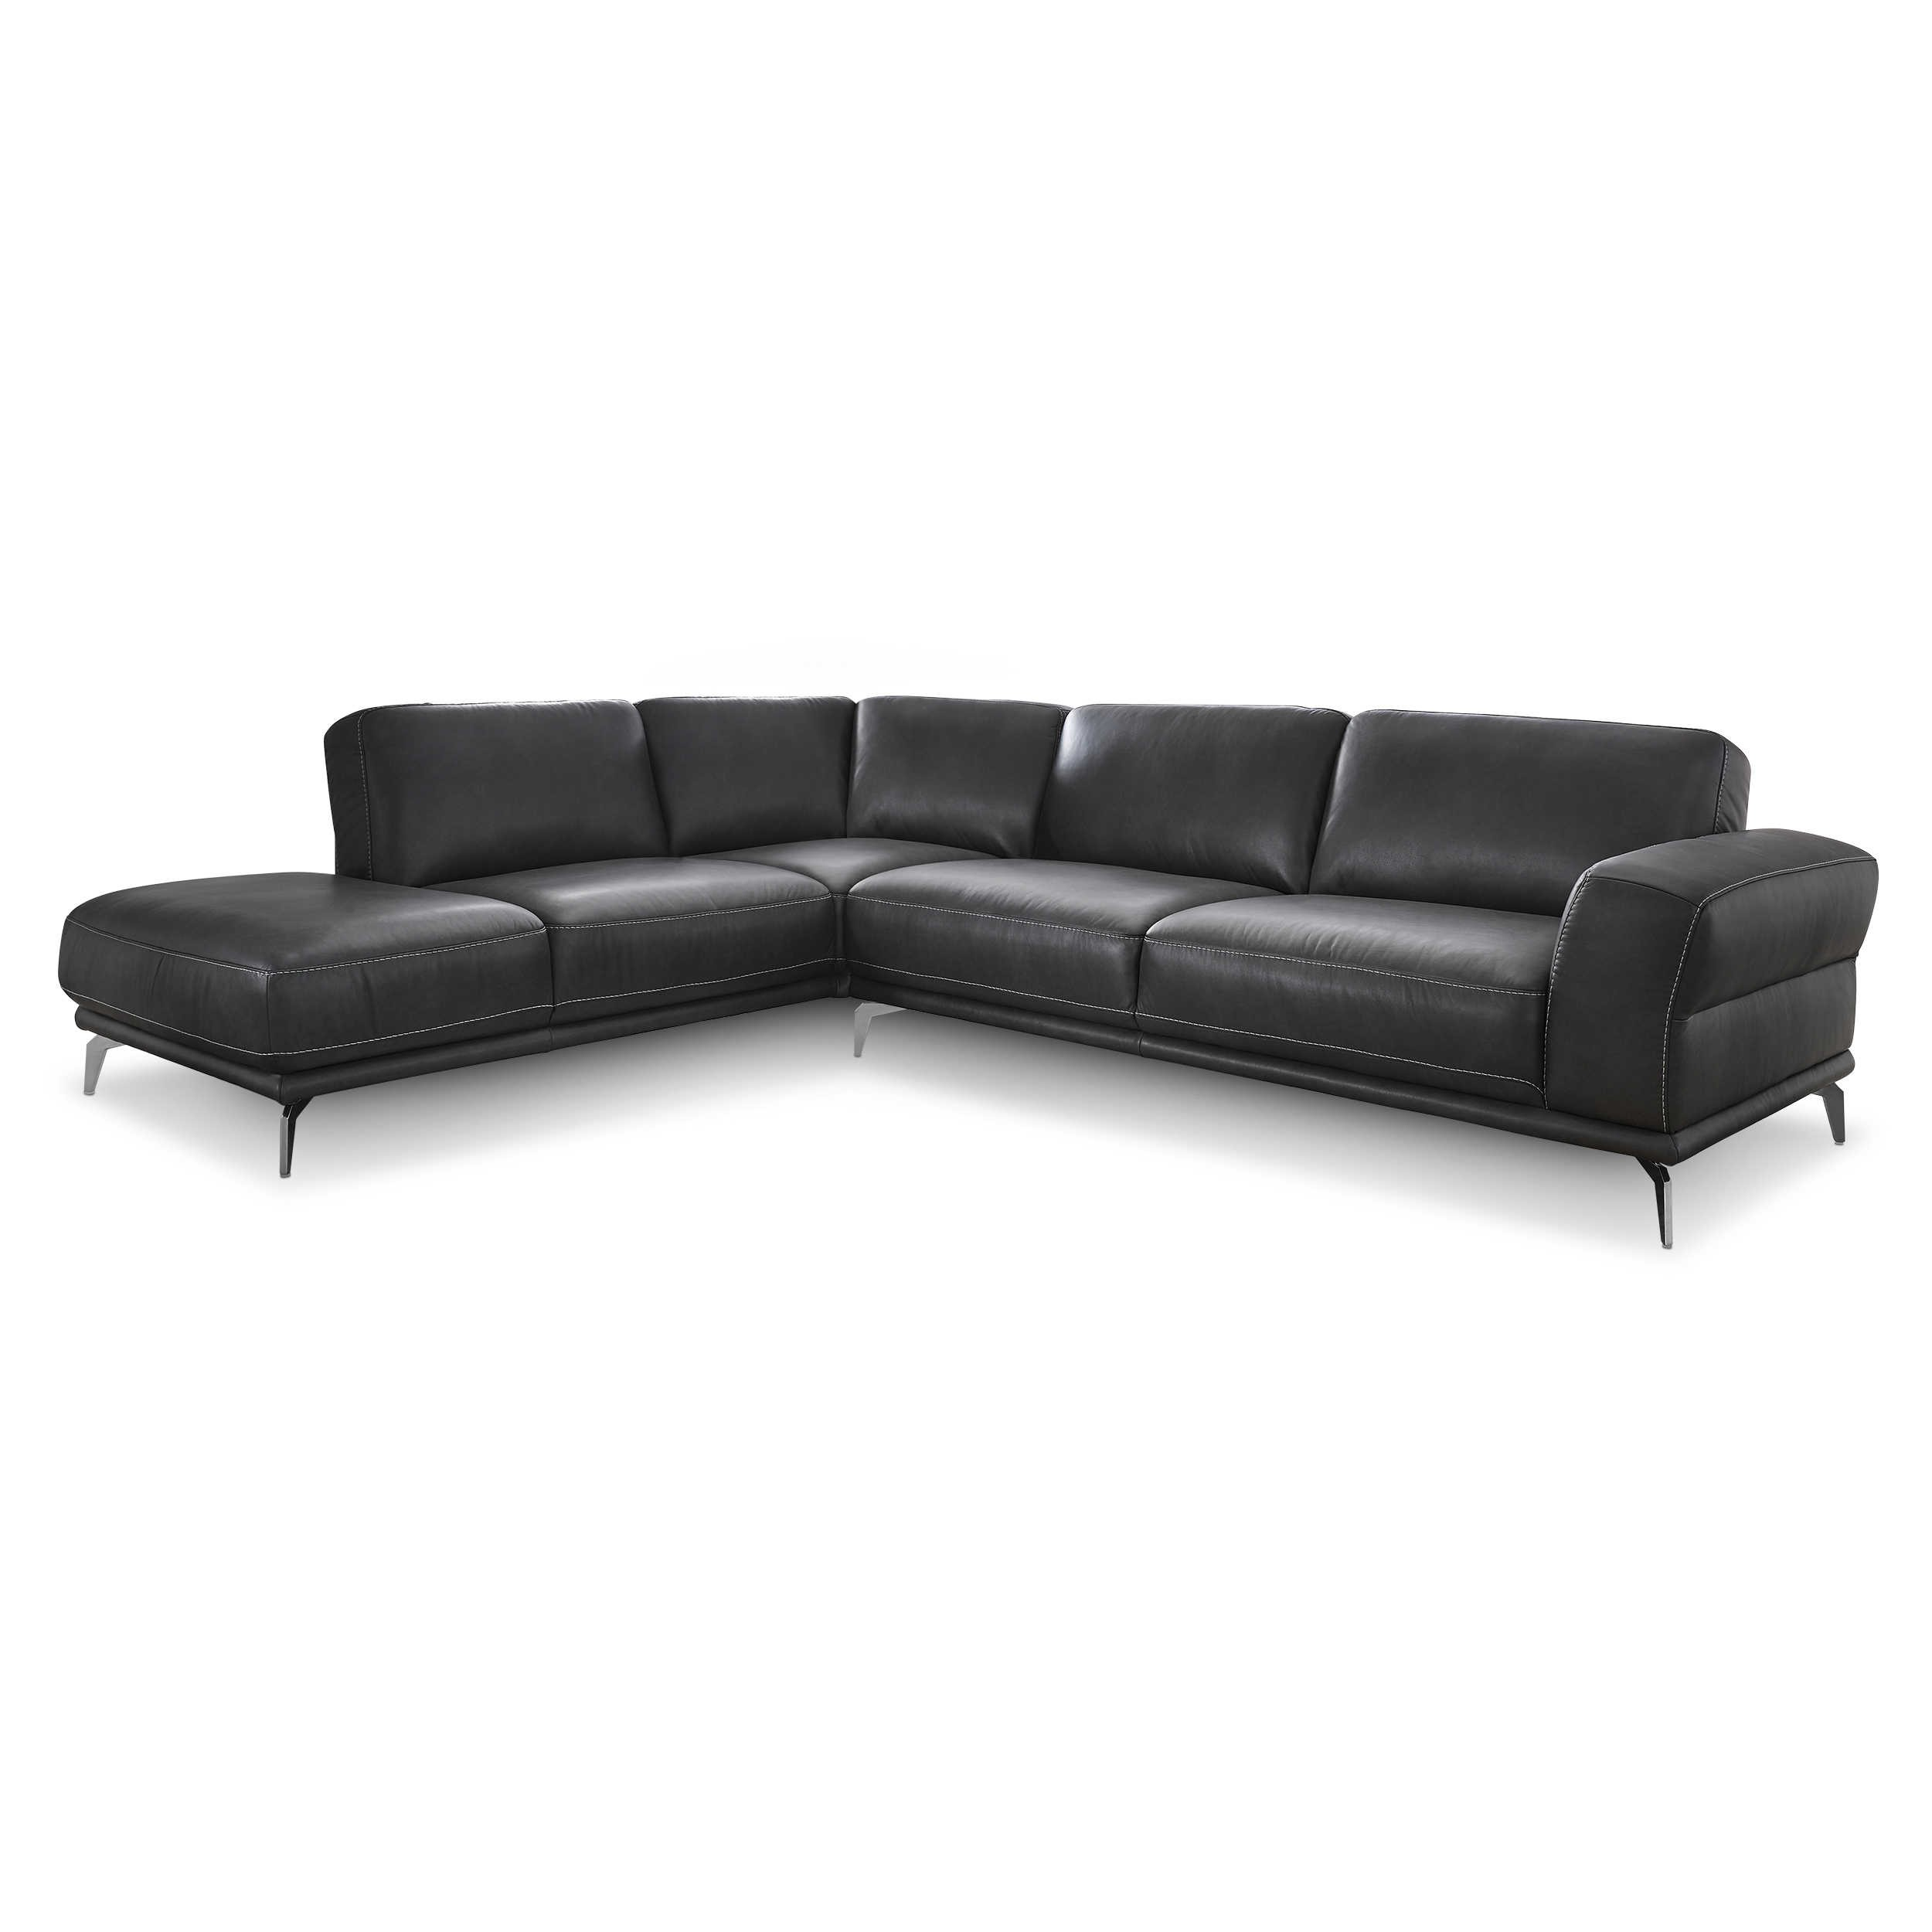 willi schillig ecksofa 24250 montanaa anthrazit leder. Black Bedroom Furniture Sets. Home Design Ideas